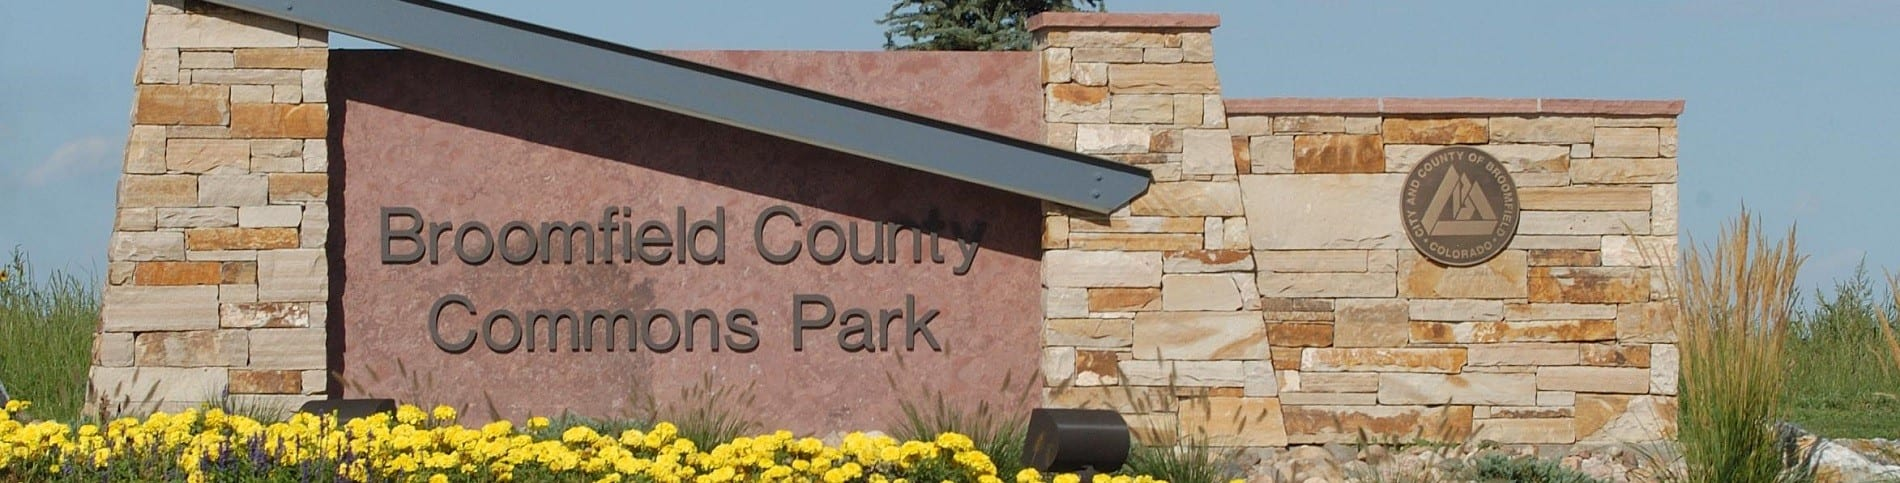 7 Best Parks in Broomfield, Colorado